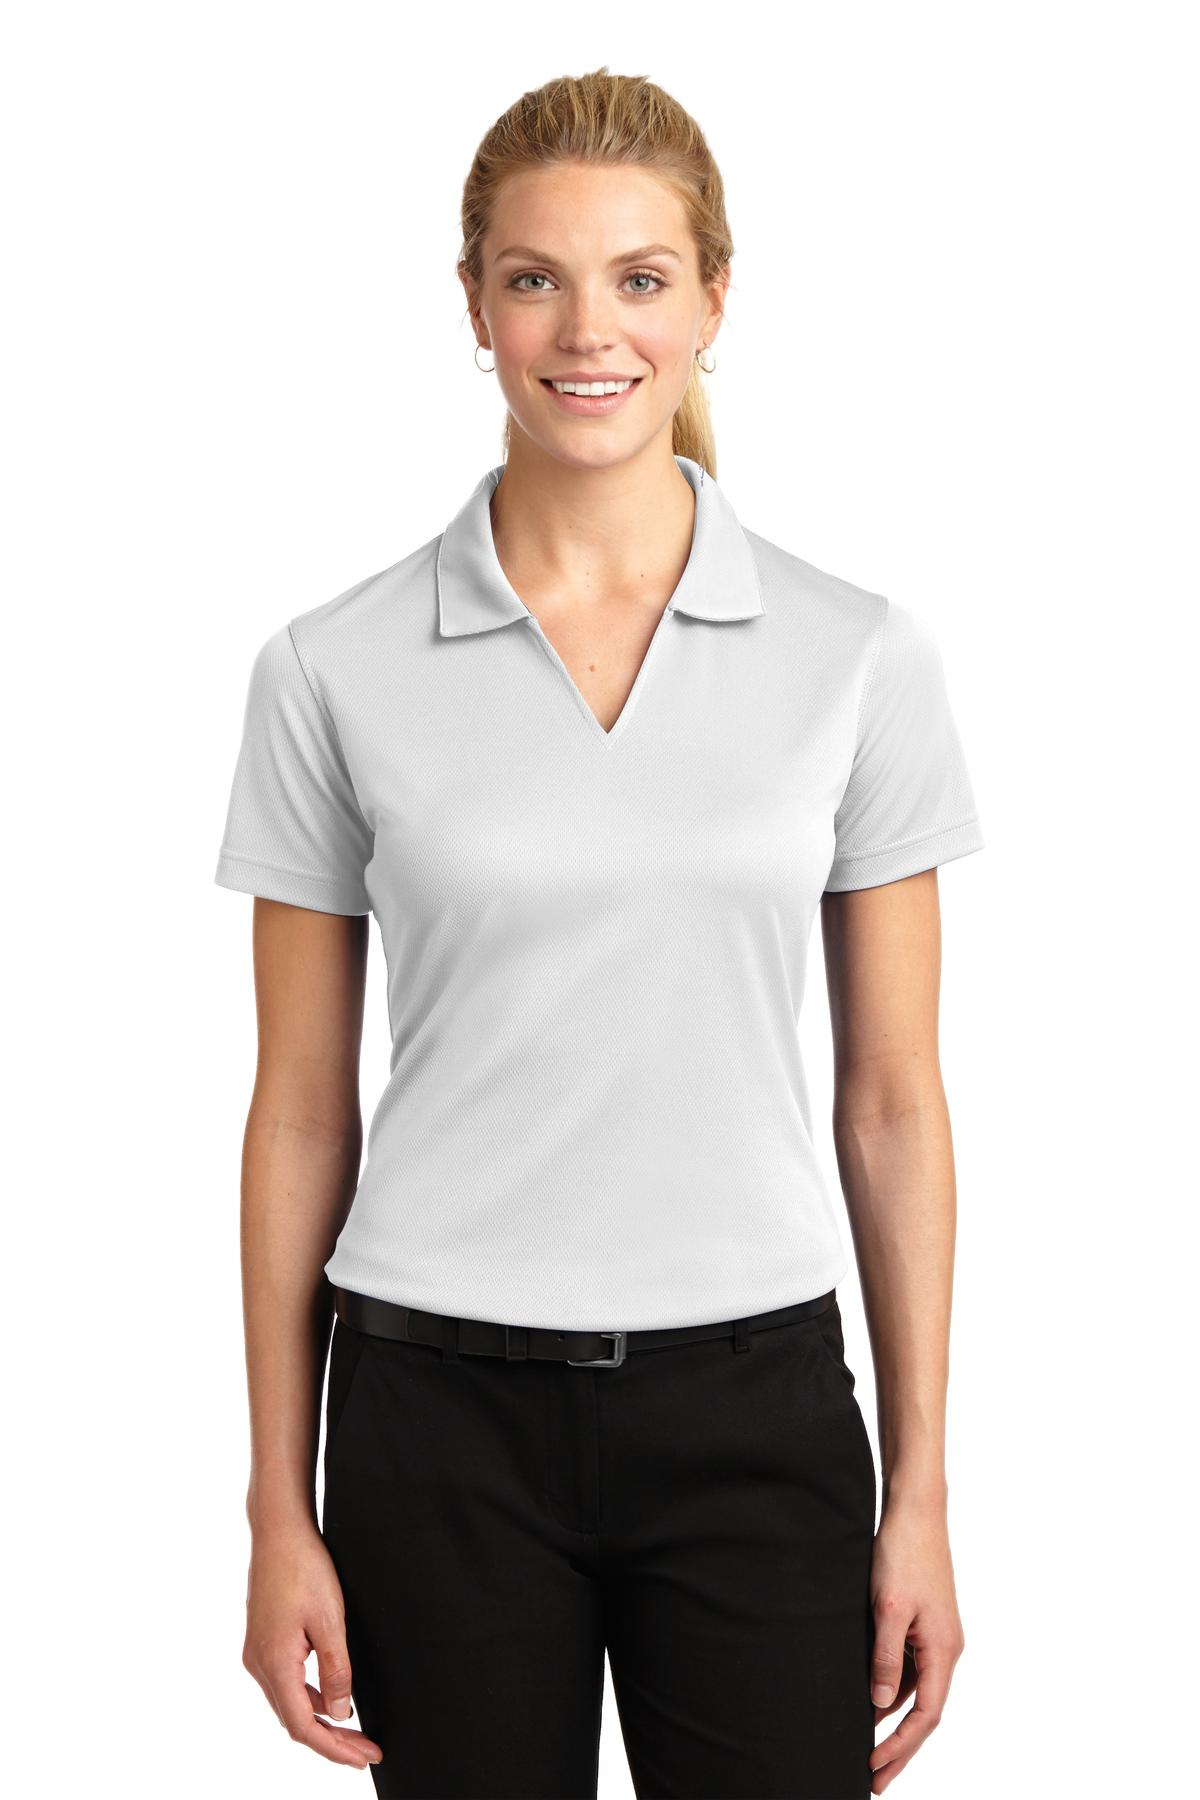 Sport-Tek ®  Ladies Dri-Mesh ®  V-Neck Polo.  L469 - White